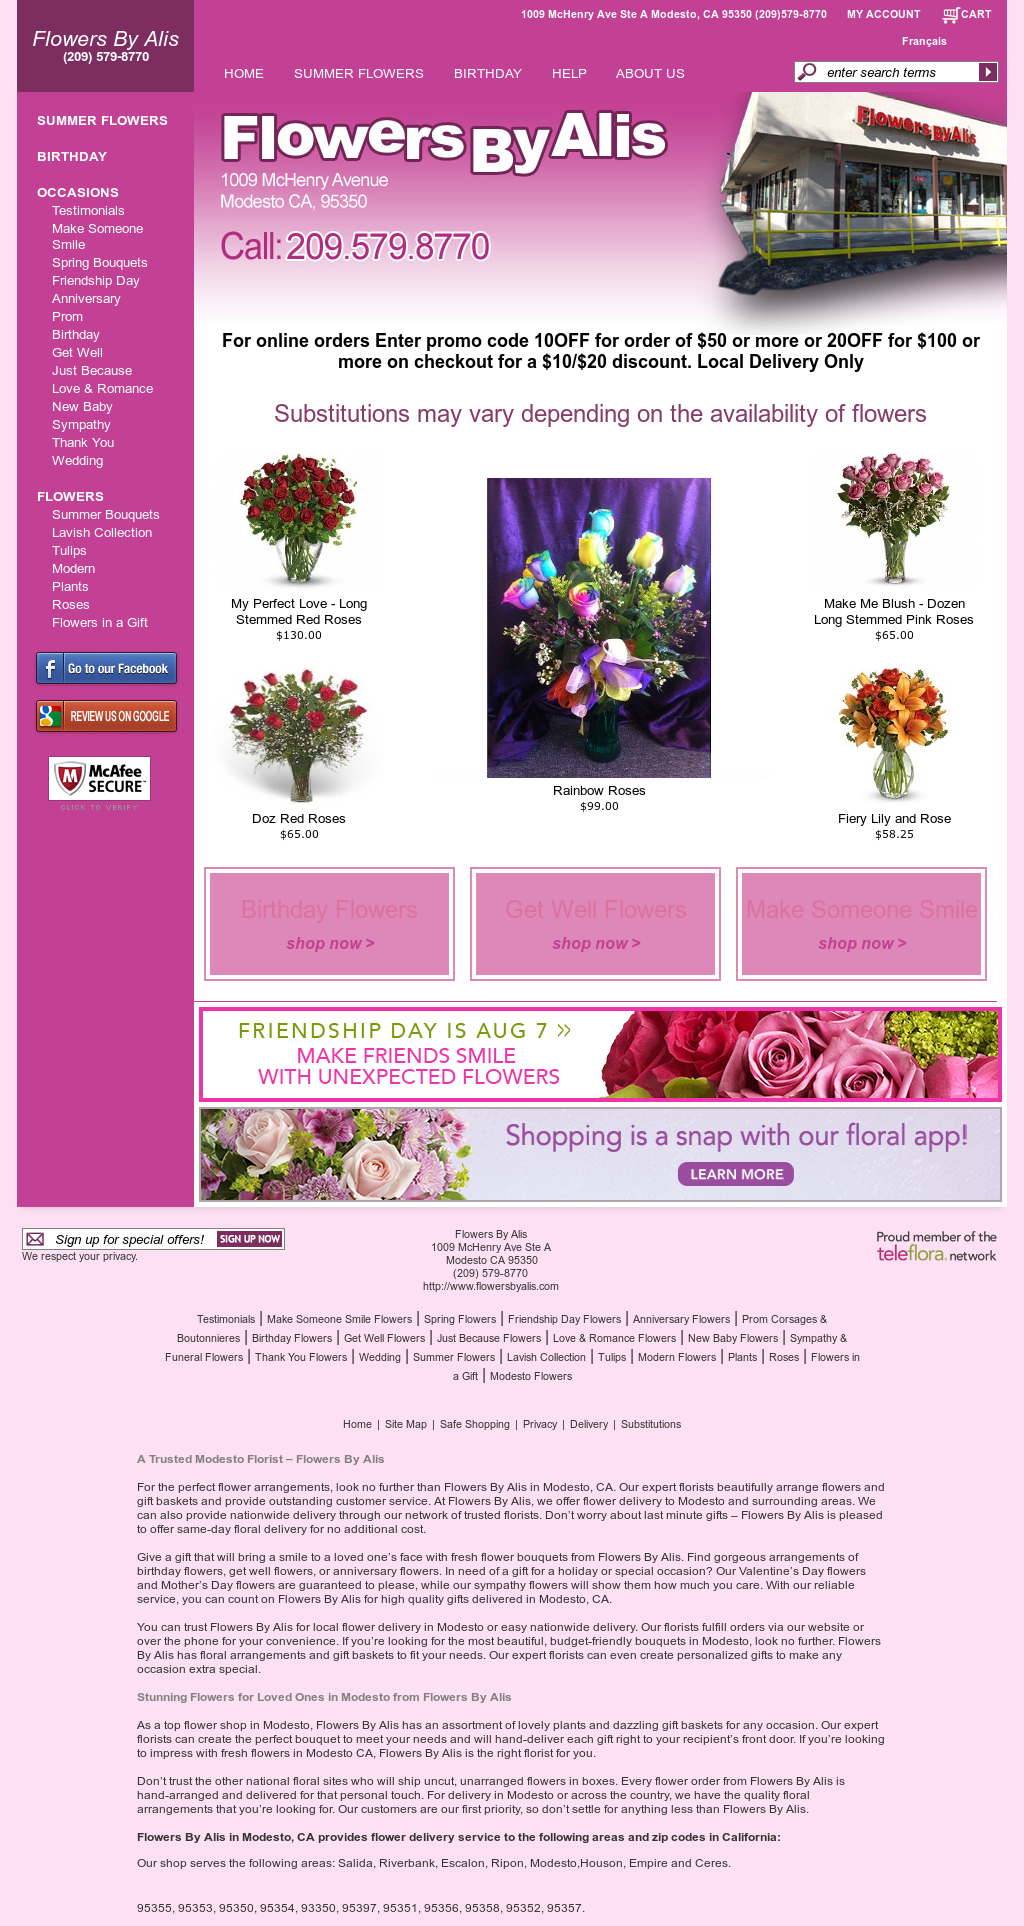 Flowers By Alis & Elegant Events Competitors, Revenue and Employees - Owler Company Profile